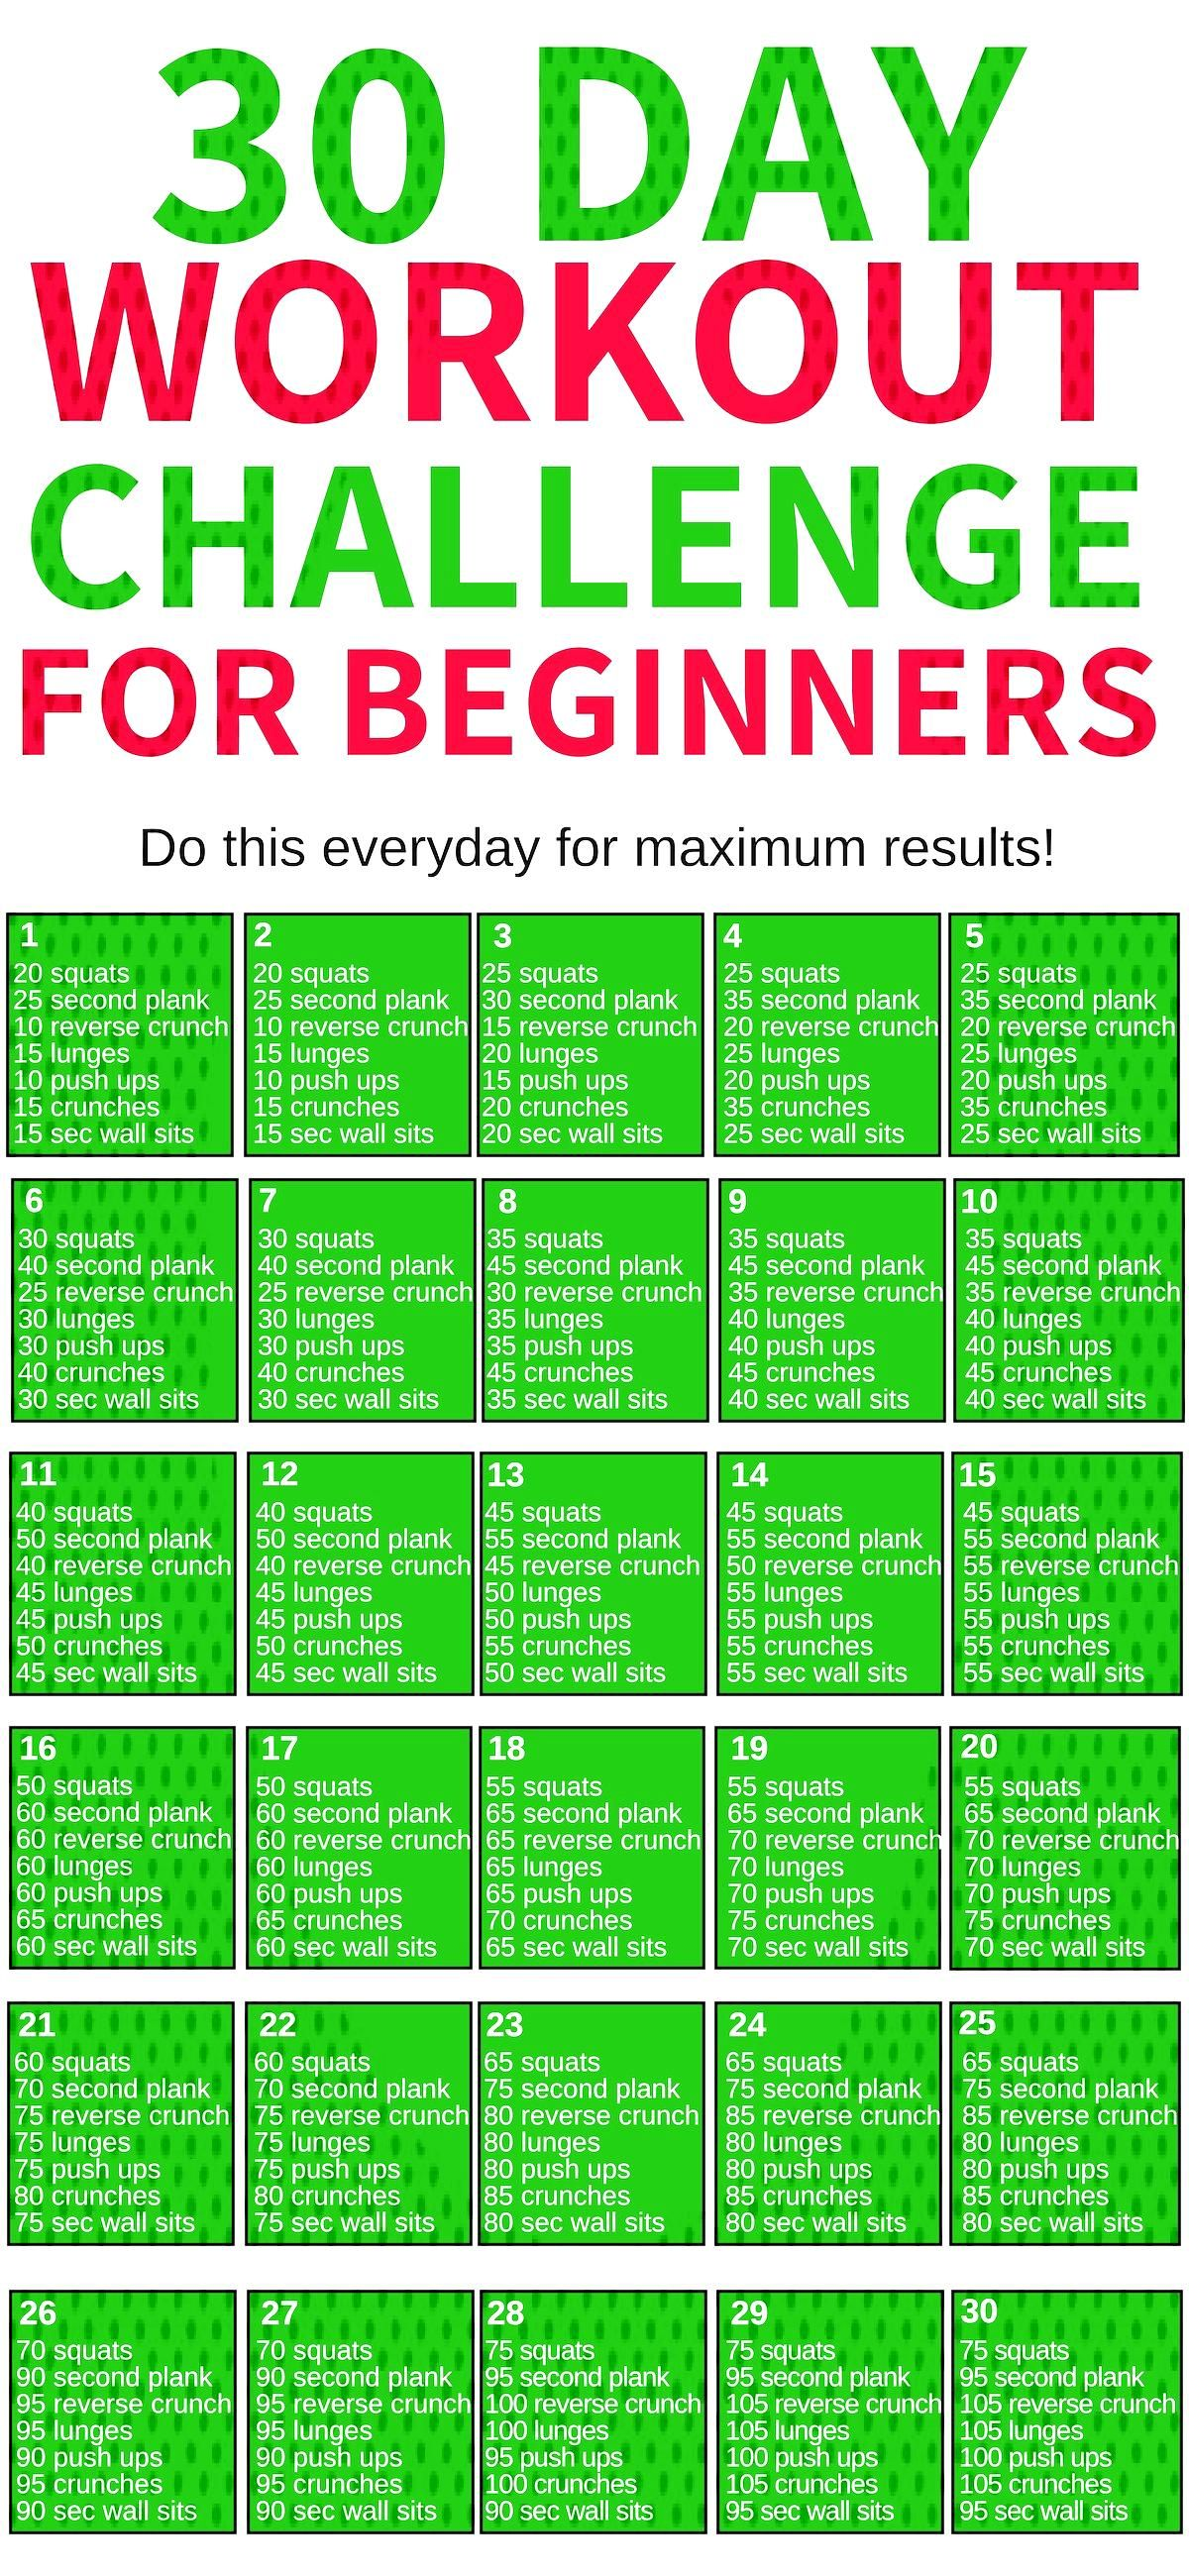 This 30 day workout challenge for beginners is THE BEST! Im so glad I found this awesome workout c